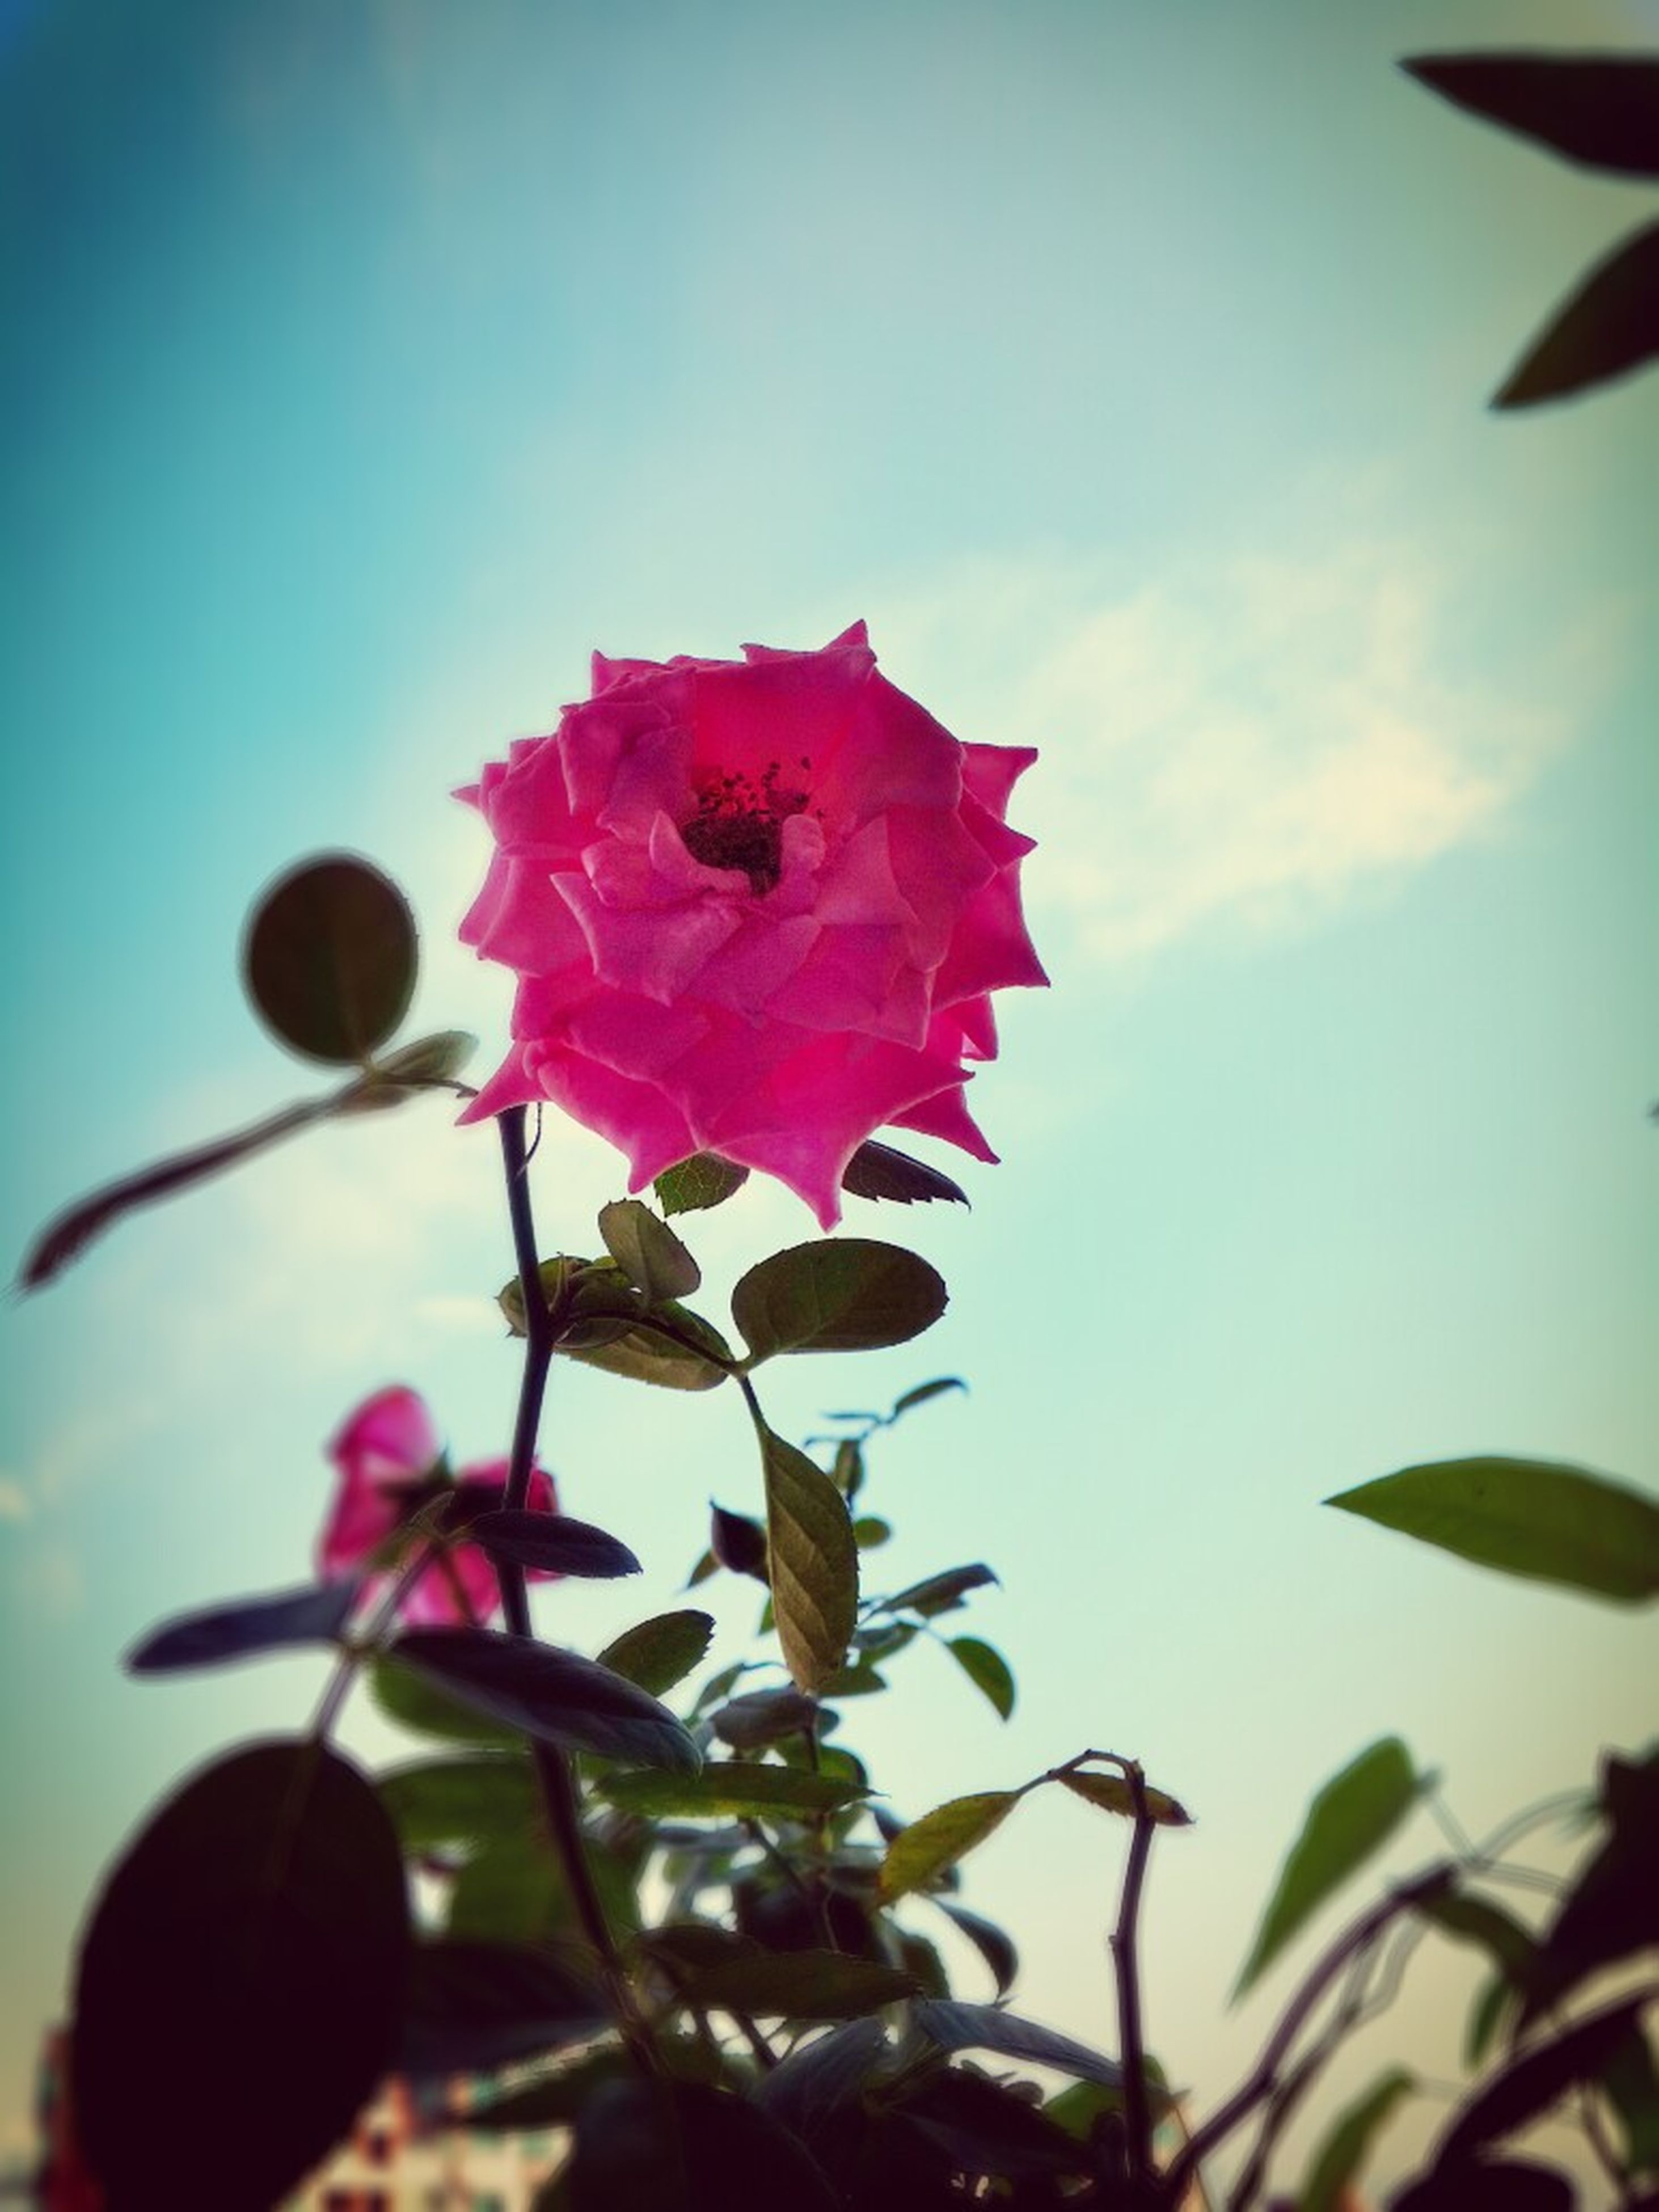 flower, growth, freshness, fragility, beauty in nature, petal, close-up, nature, low angle view, leaf, flower head, focus on foreground, sky, red, plant, in bloom, blooming, selective focus, blossom, pink color